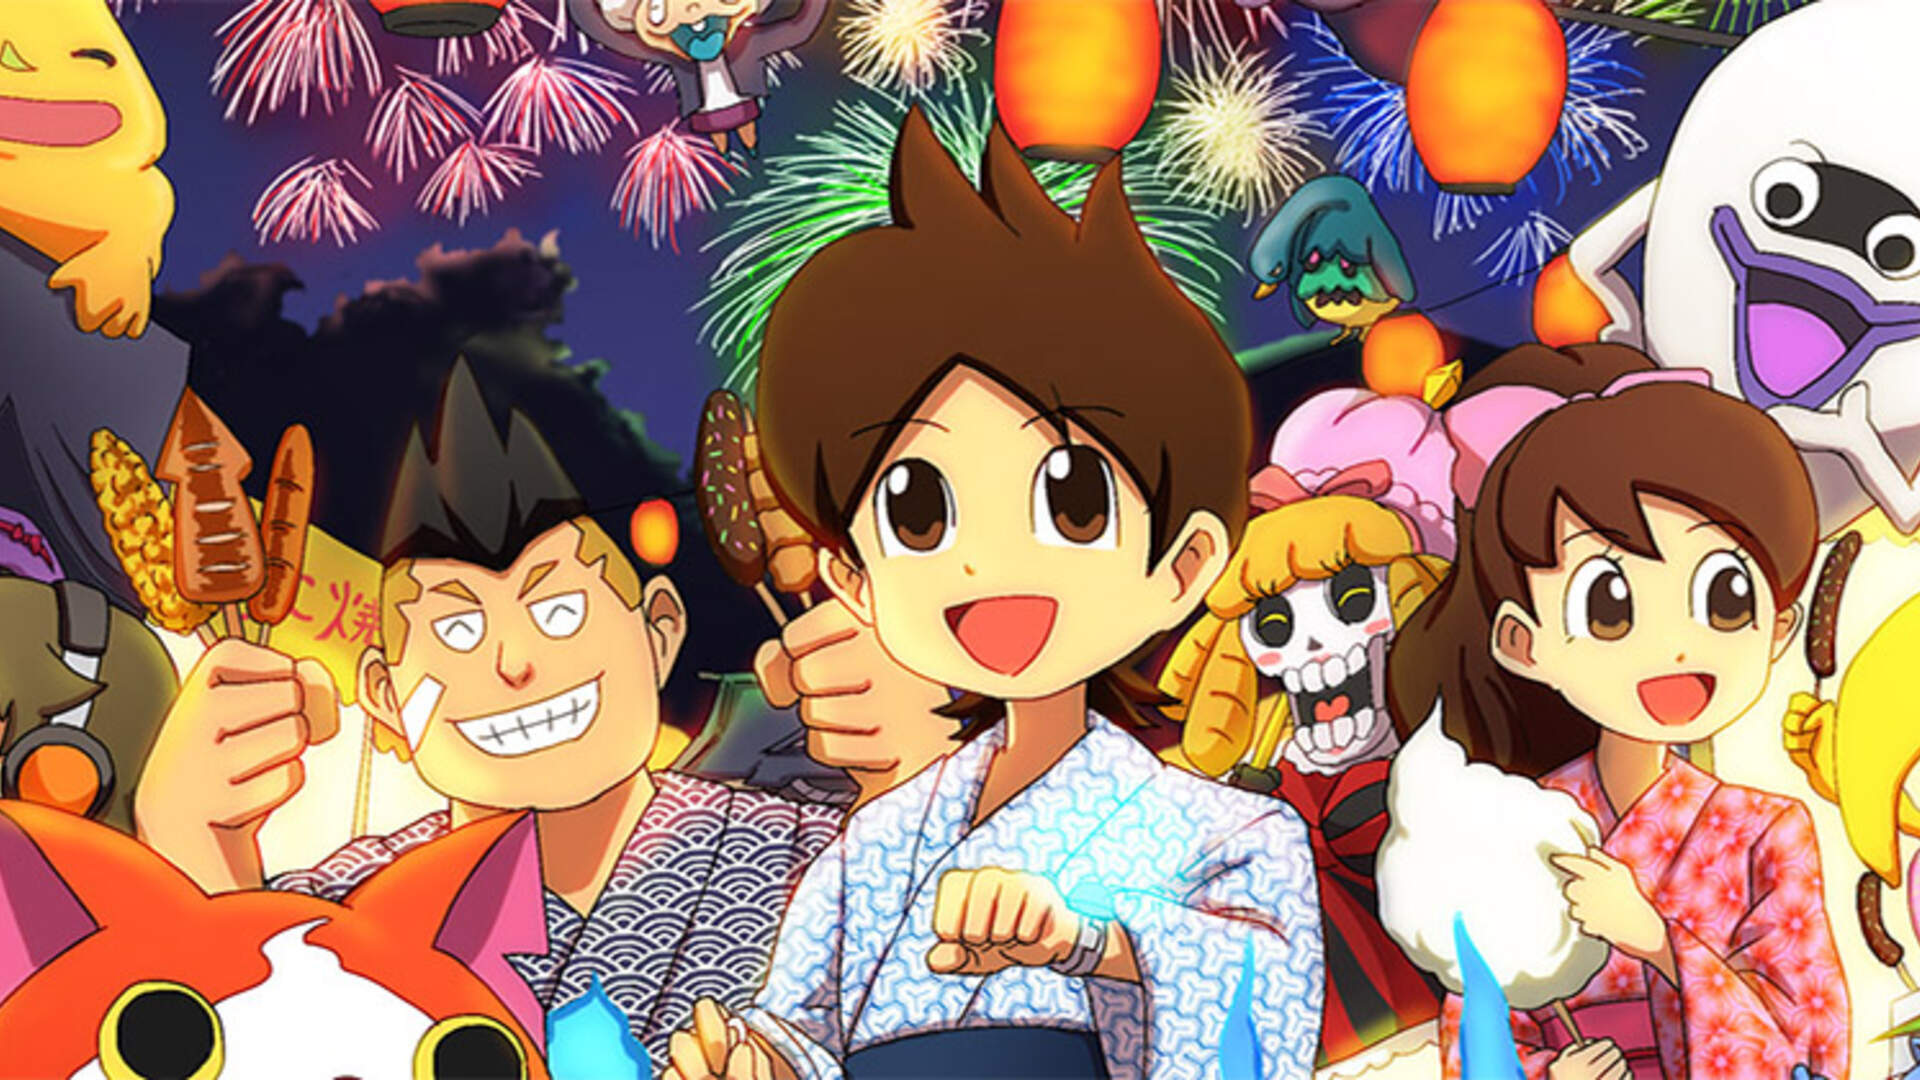 Yokai Watch and the Muting of Japanese Culture